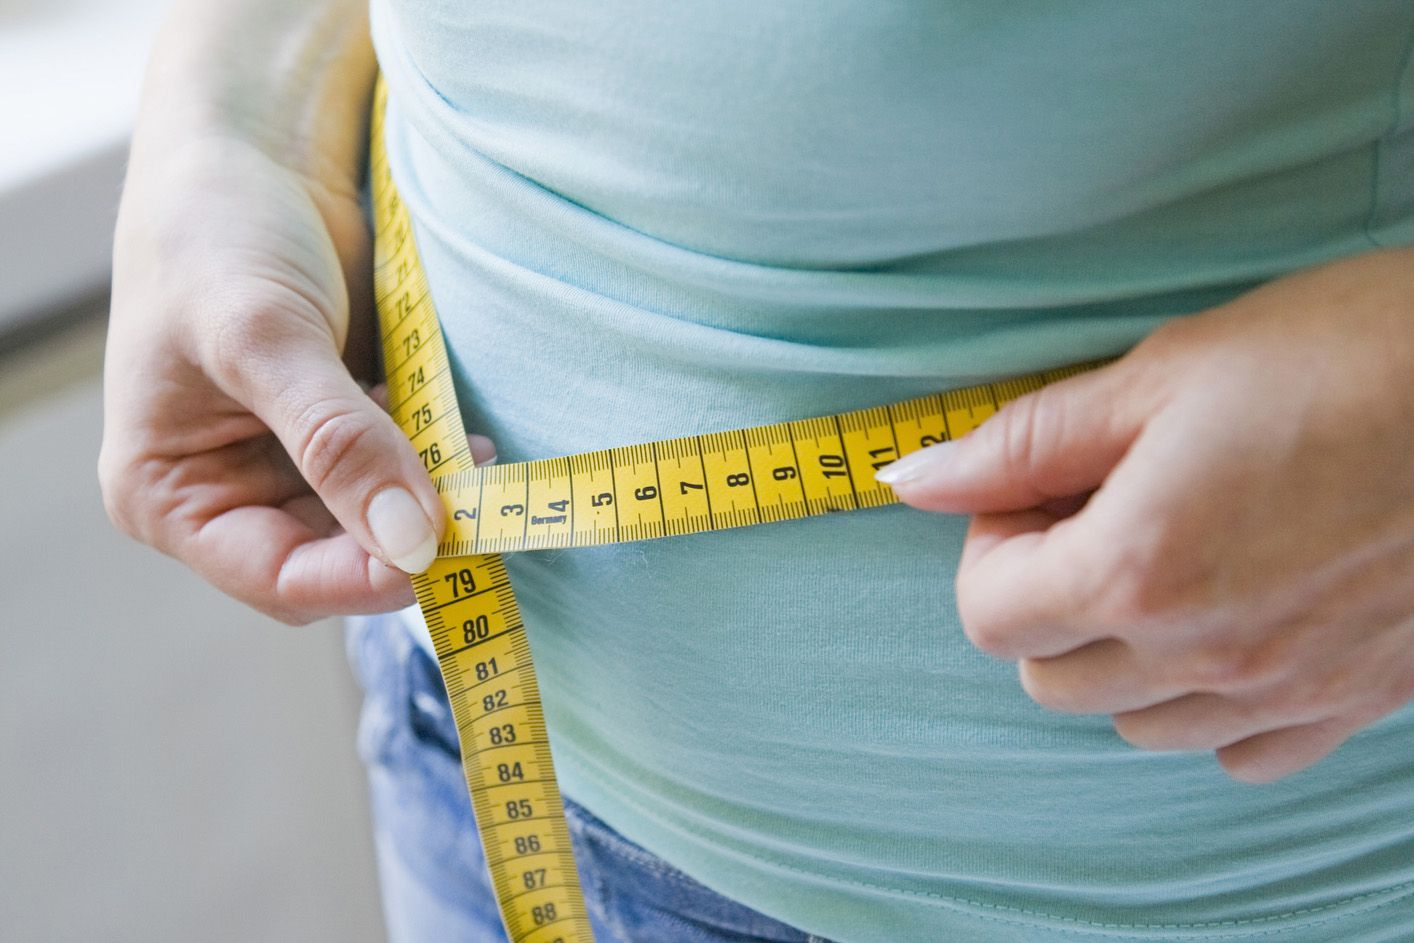 Waist Circumference And Diabetes